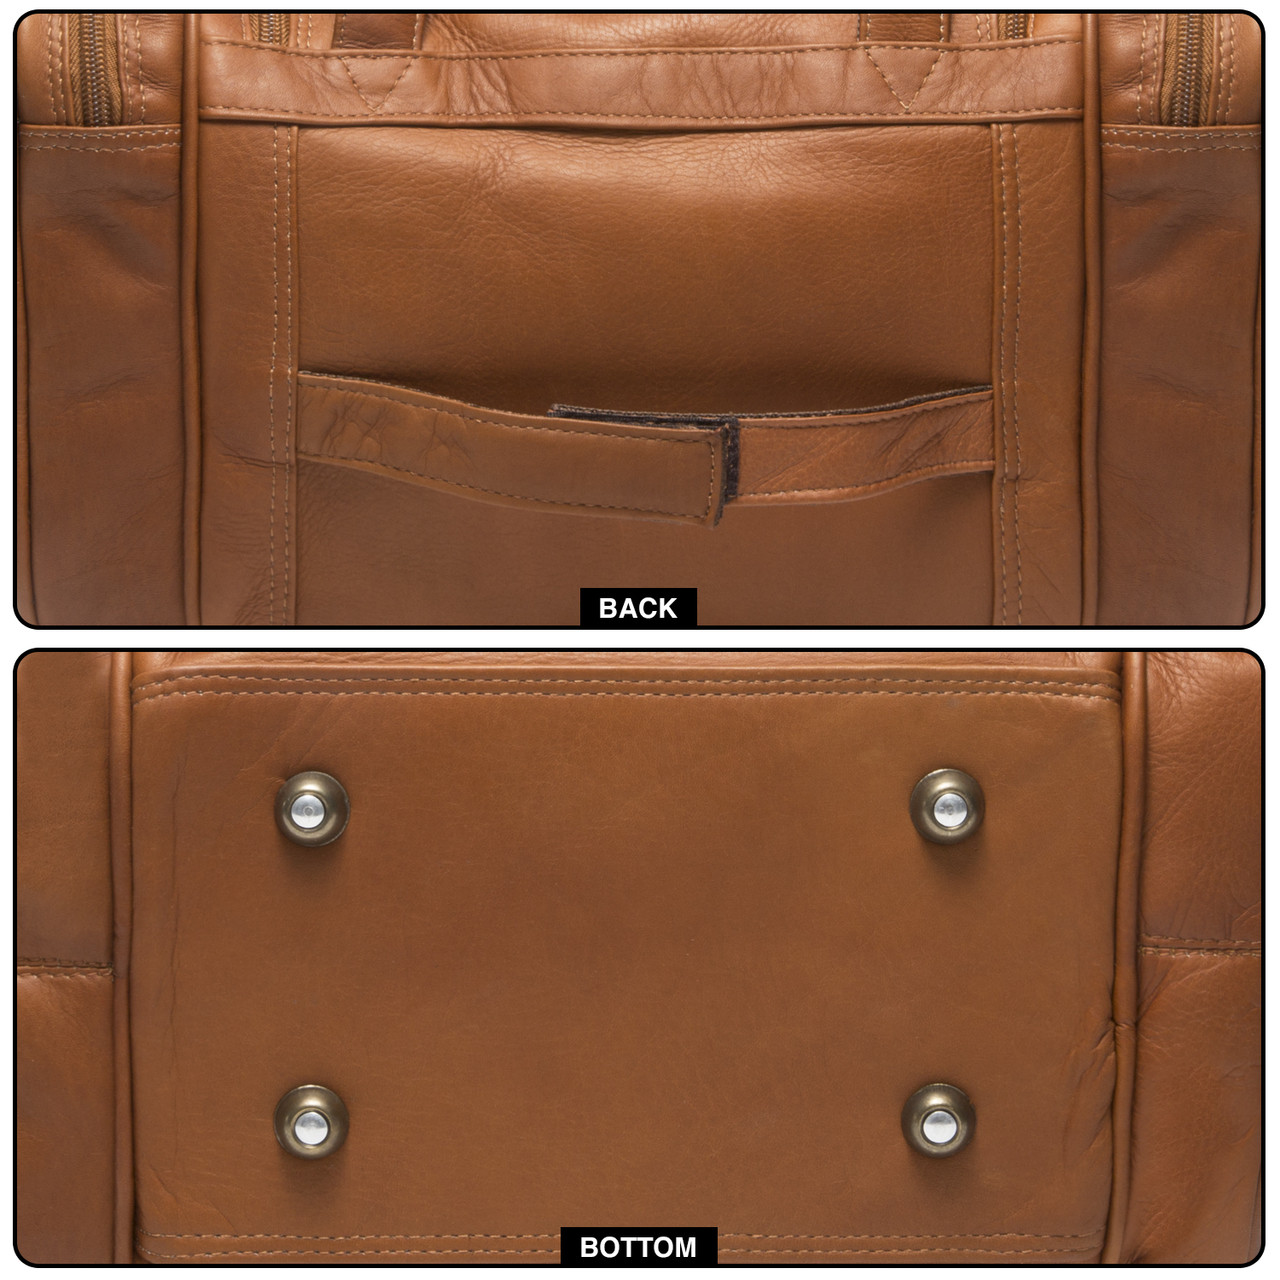 Muiska - Marco - features an adjustable strap that can be slid over carry-on luggage handle for easy transport.